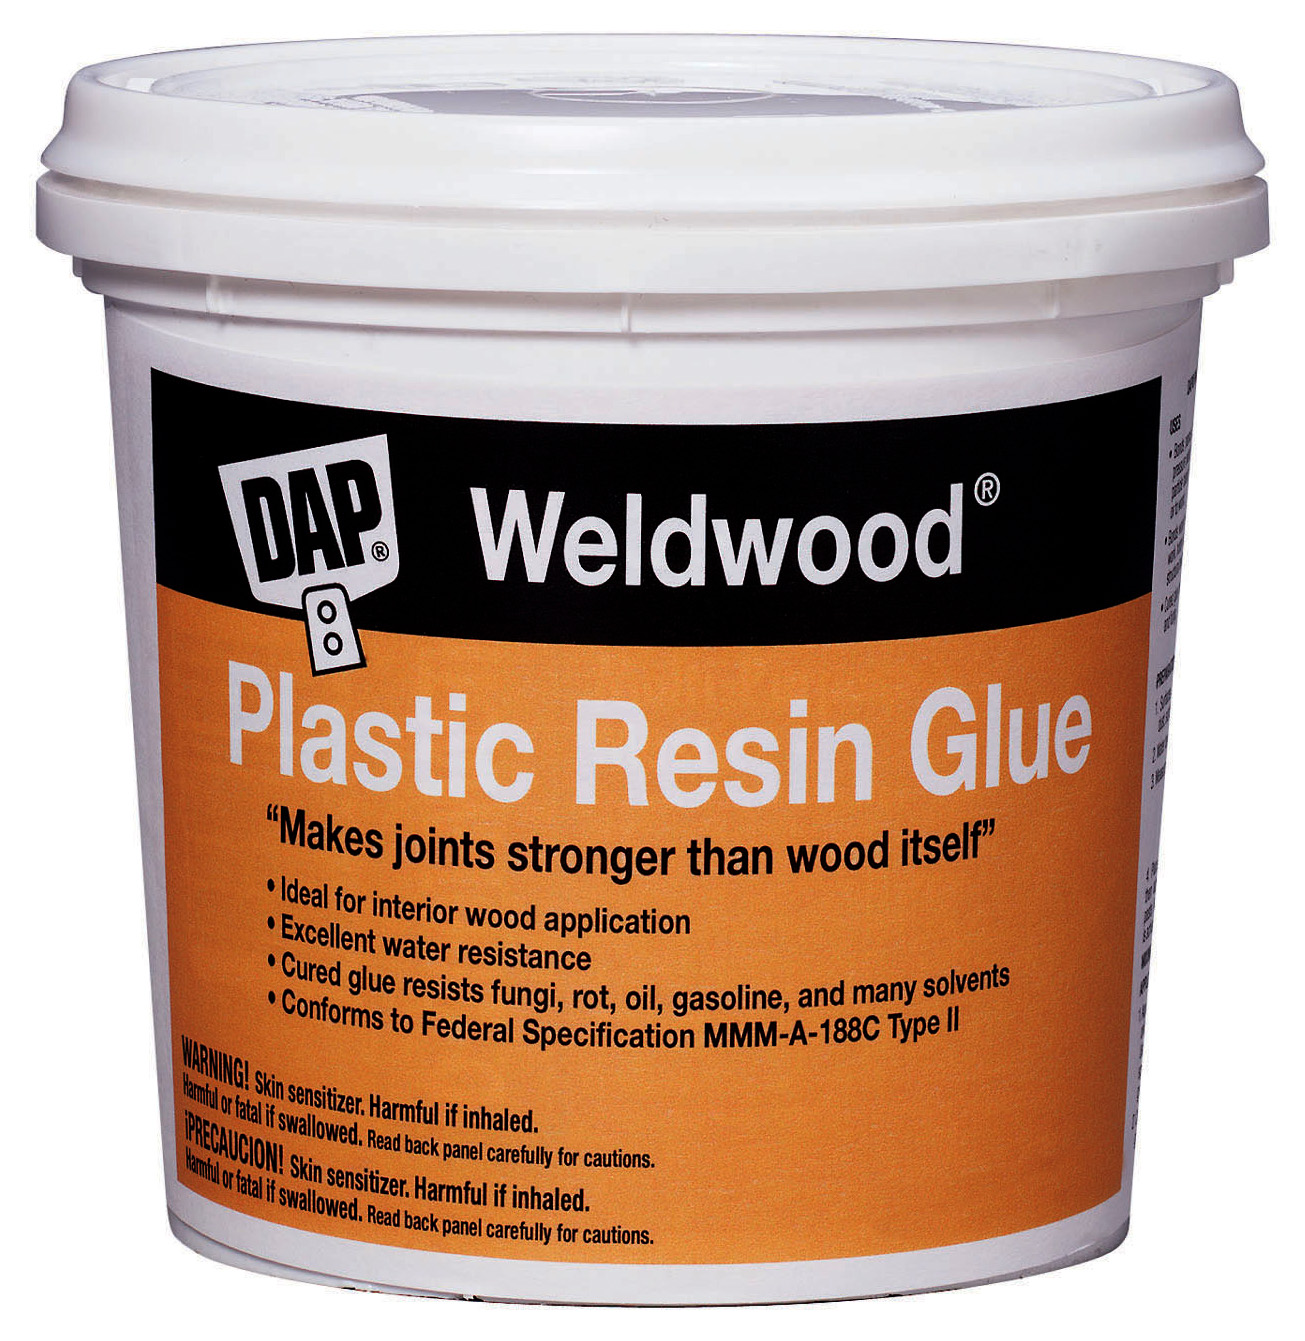 Dap Weldwood 204 4.5 lb. Plastic Resin Wood Glue